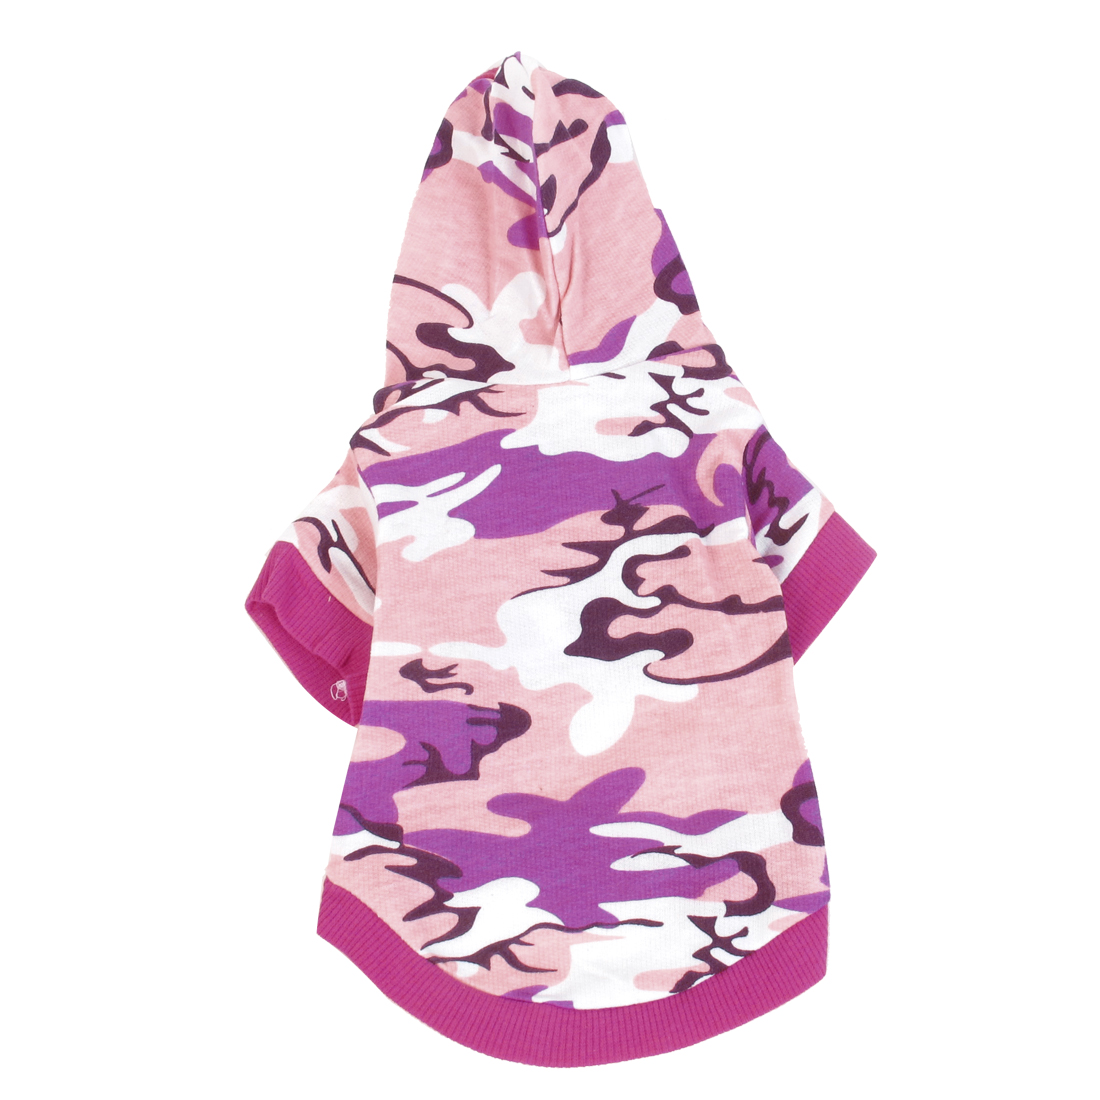 Camouflage Pattern Single Breasted Hooded Pet Dog Yorkie Cat Coat Apparel Pink S